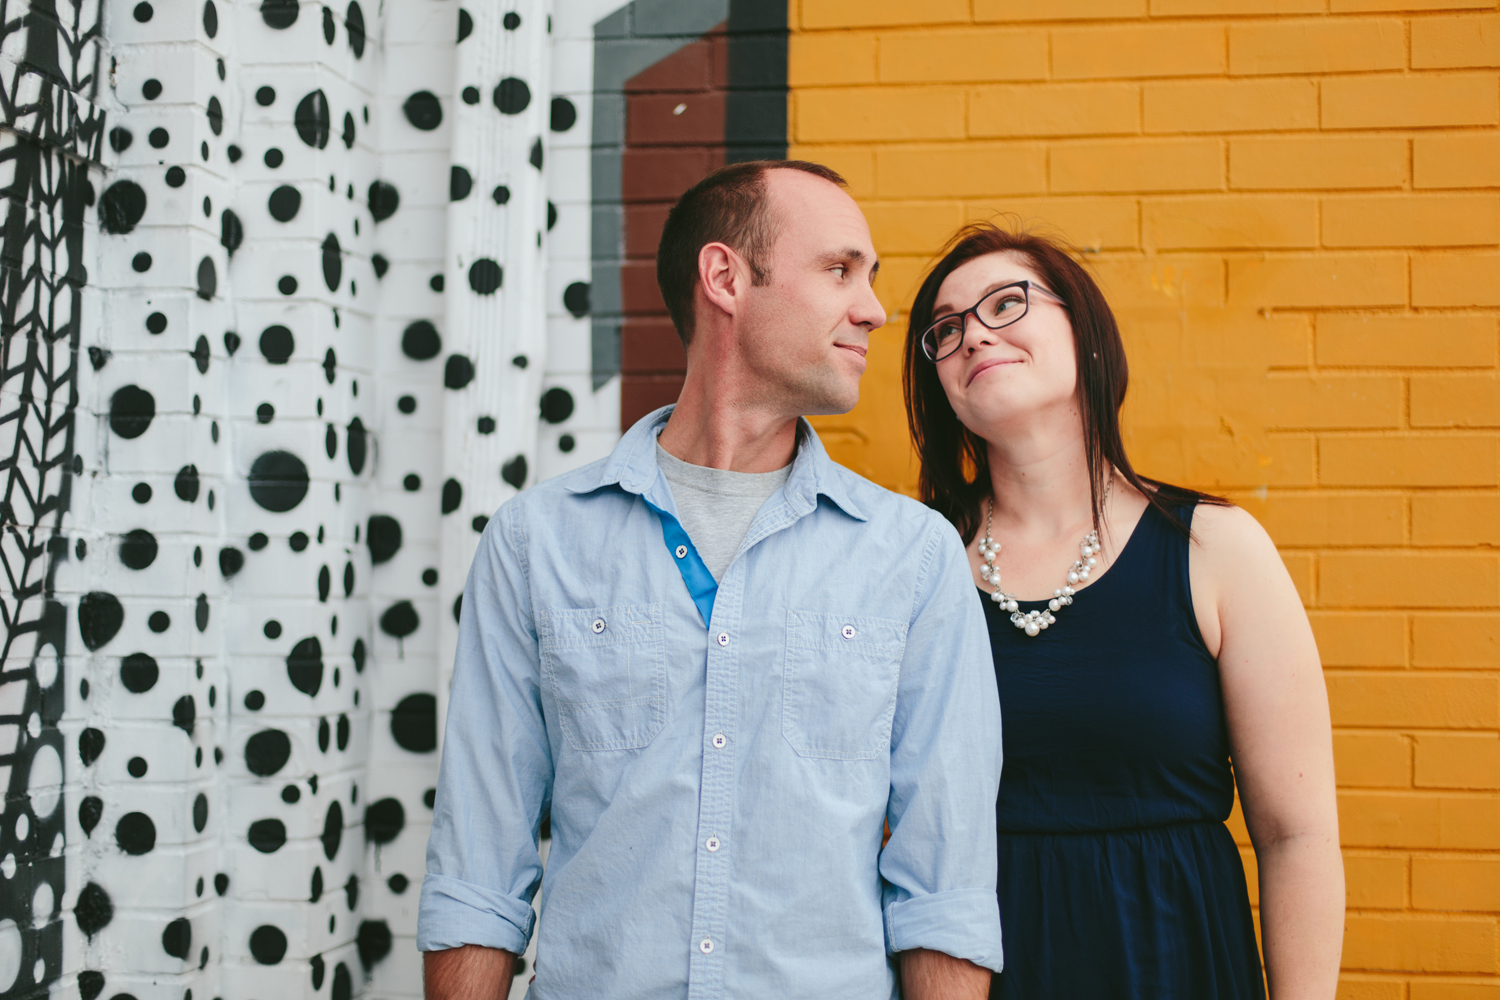 Jillian VanZytveld Photography Denver Colorado Engagement Portraits 21.jpg